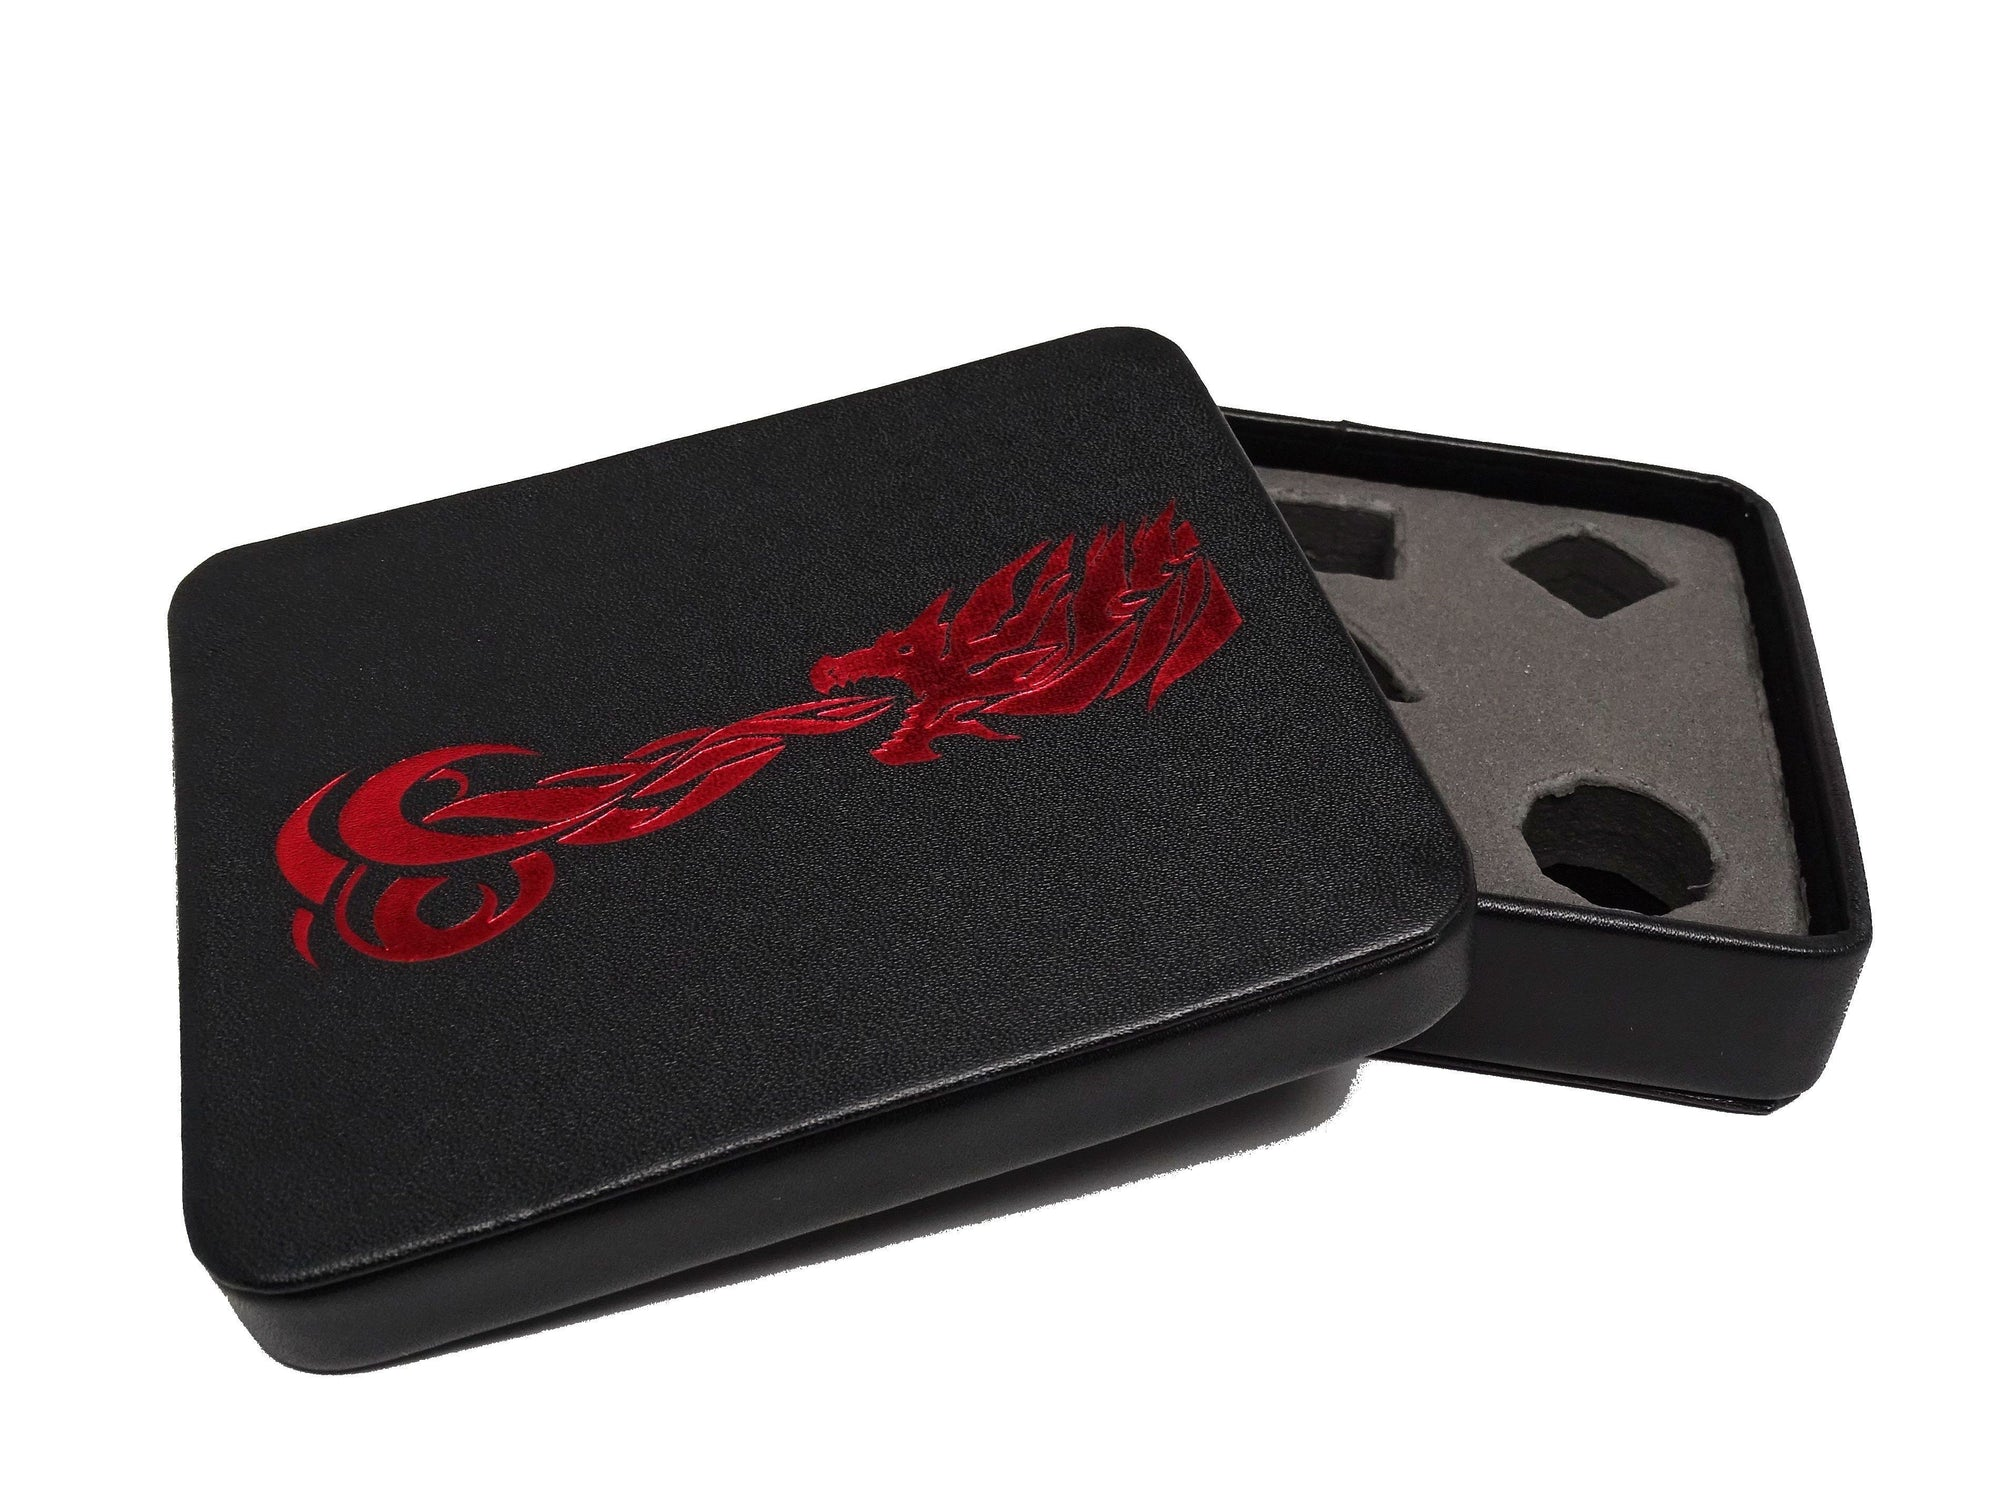 Dice Display and Storage Case - Red Dragon Design